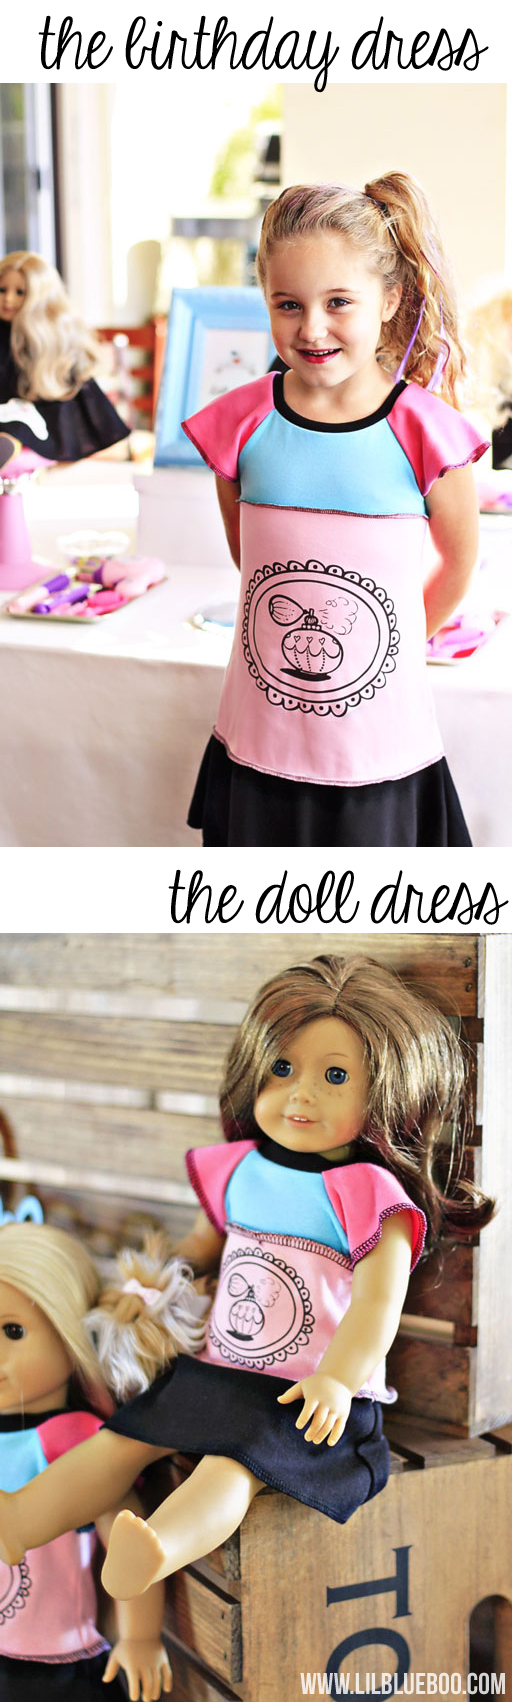 Birthday Dress with Matching American Girl Doll Dress for Salon Party via lilblueboo.com #americangirl #party #diy